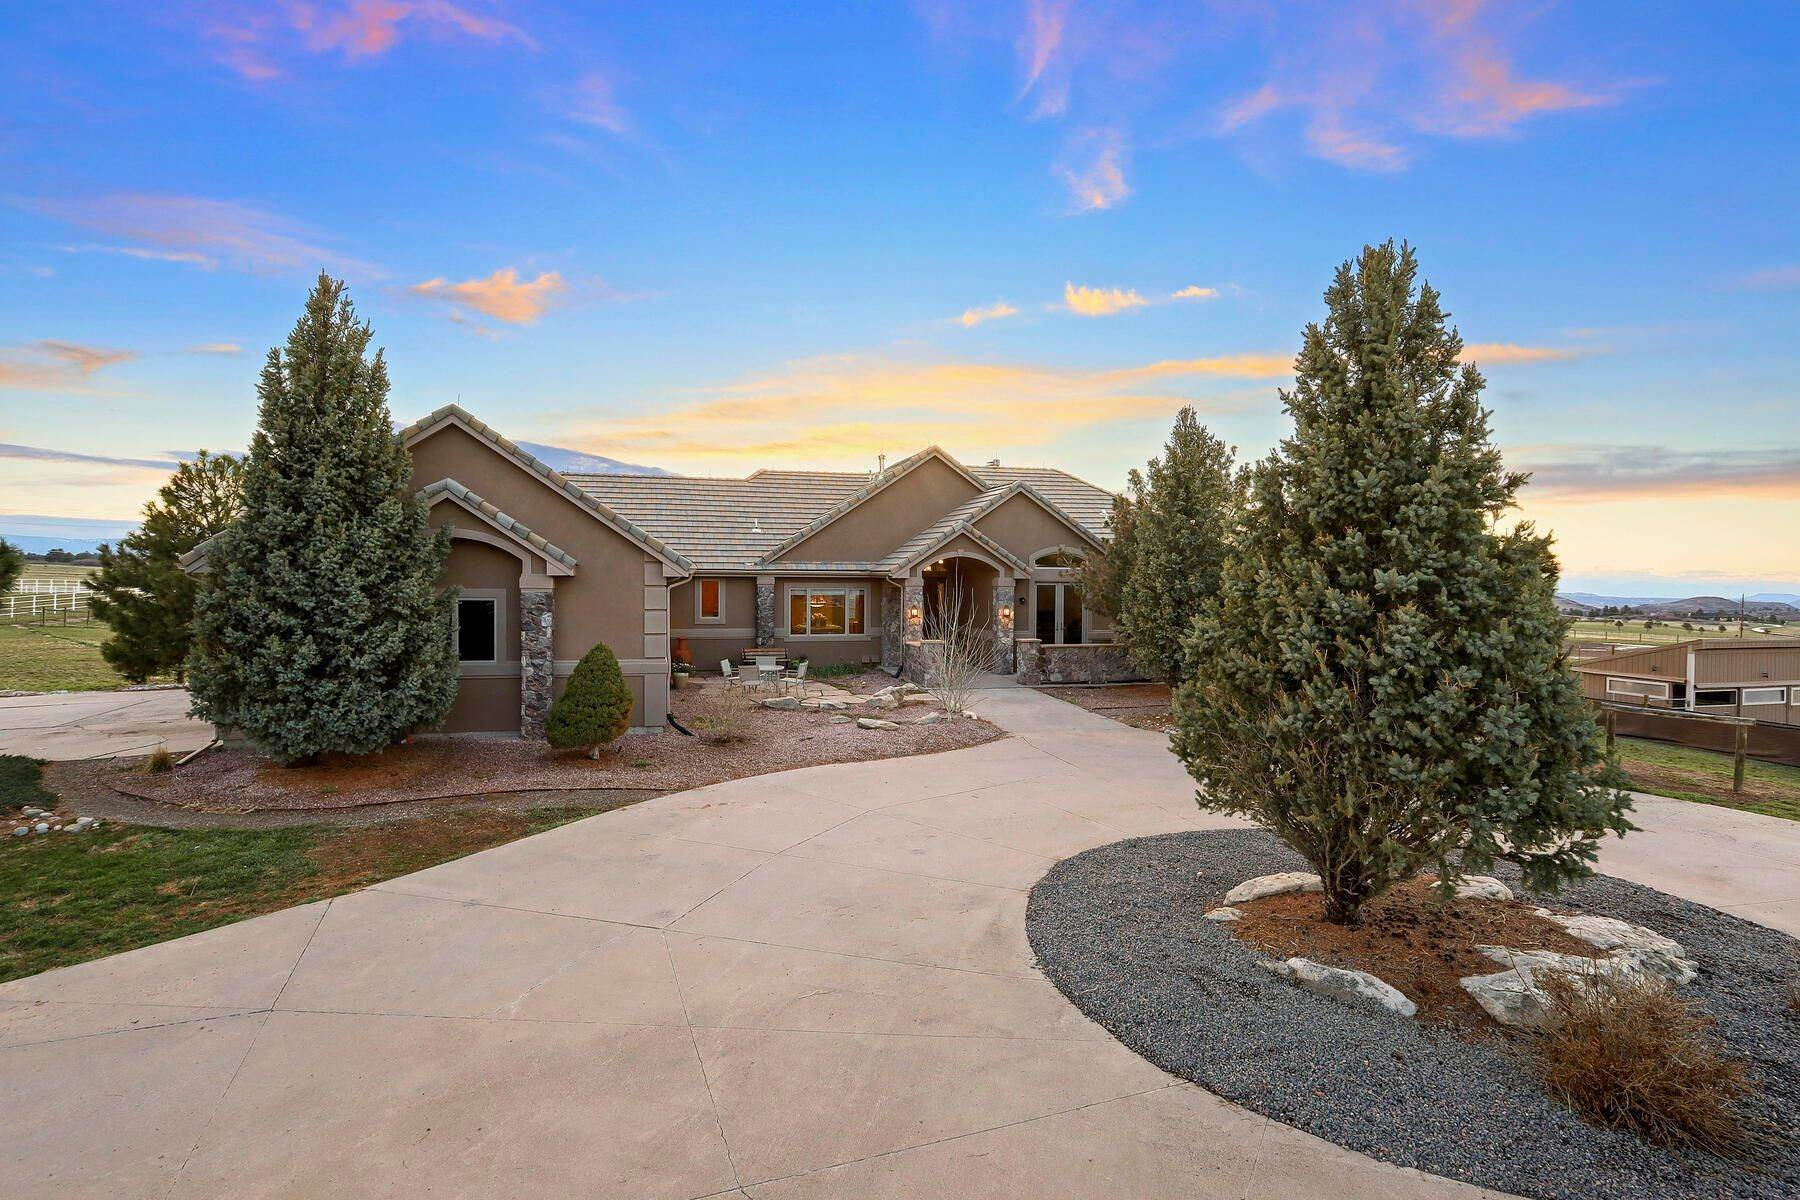 Single Family Homes for Active at 5219 Stone Canon Ranch Road, Castle Rock, Co, 80104 5219 Stone Canon Ranch Road Castle Rock, Colorado 80104 United States